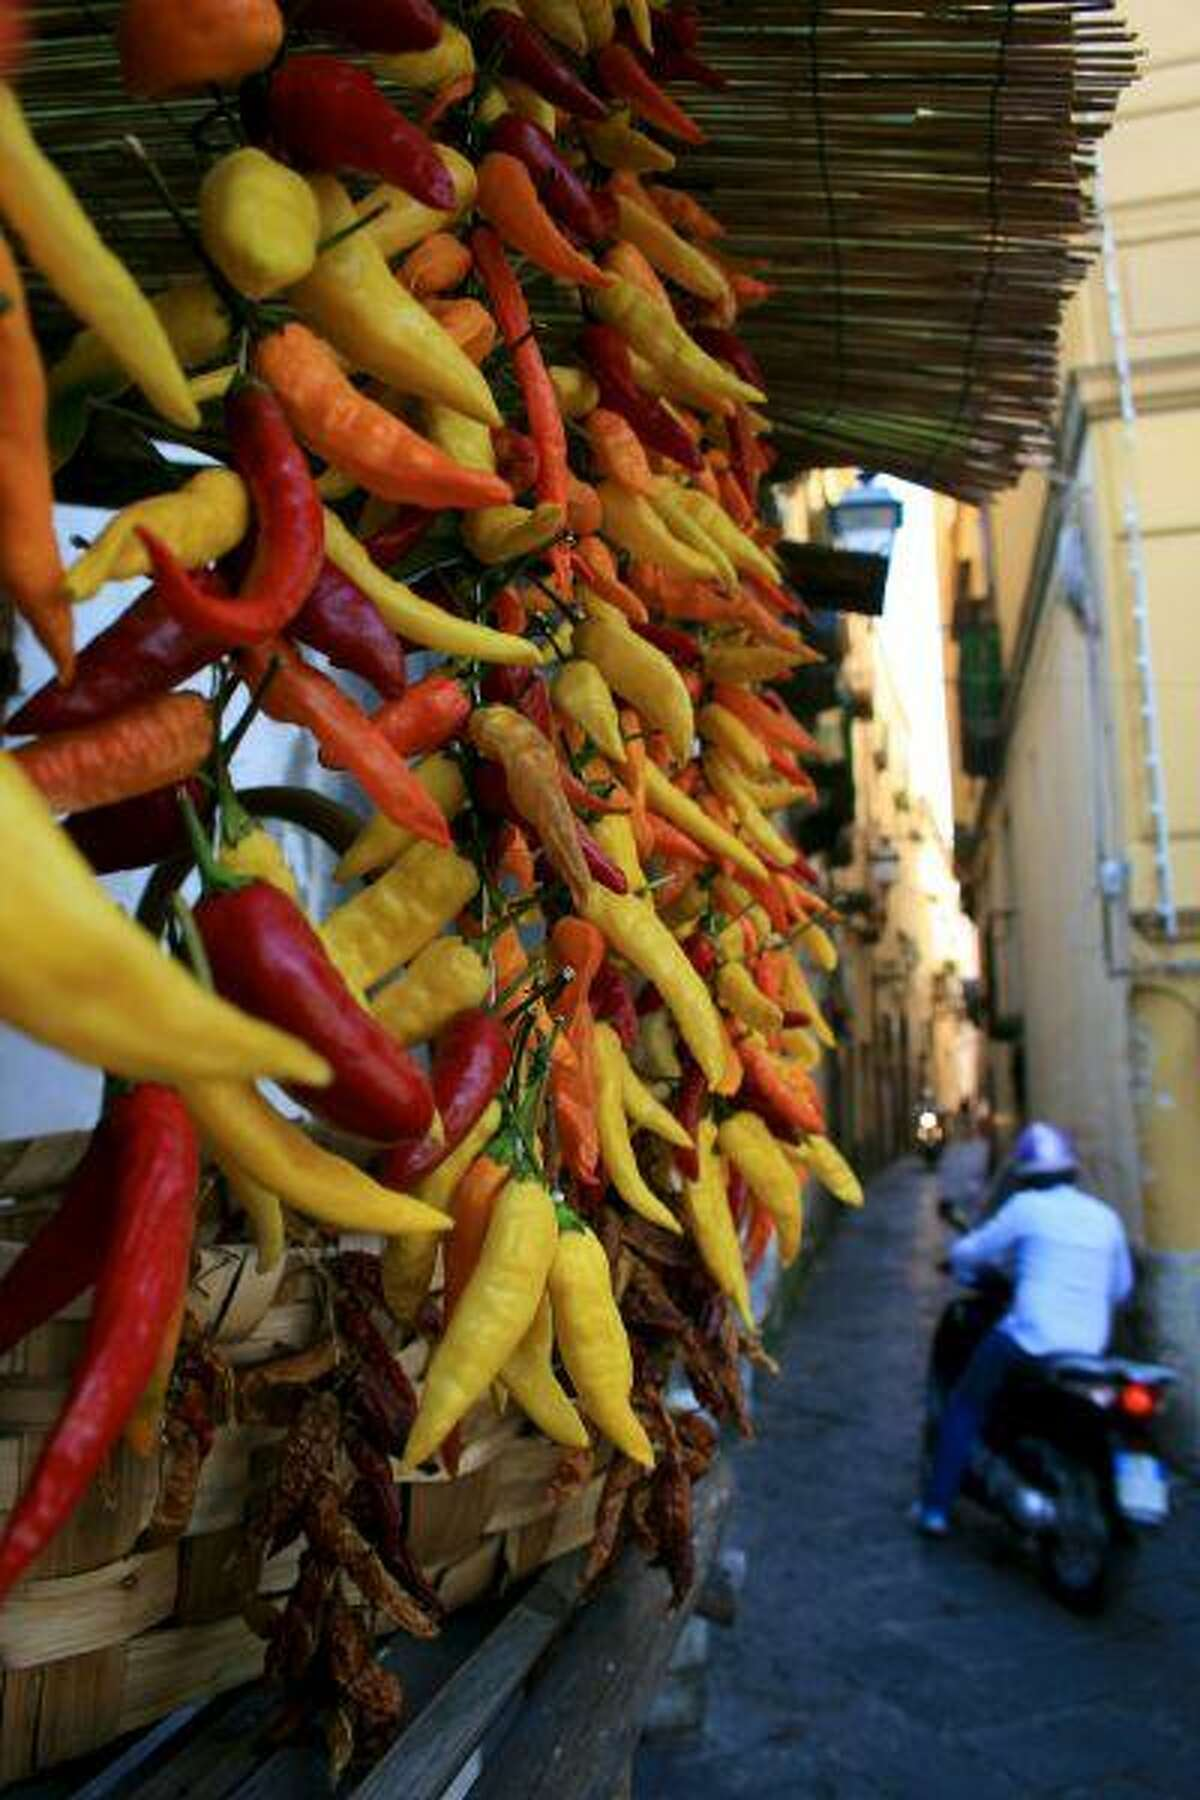 The streets of Sorrento, Italy are lined with stalls selling fresh chilies.